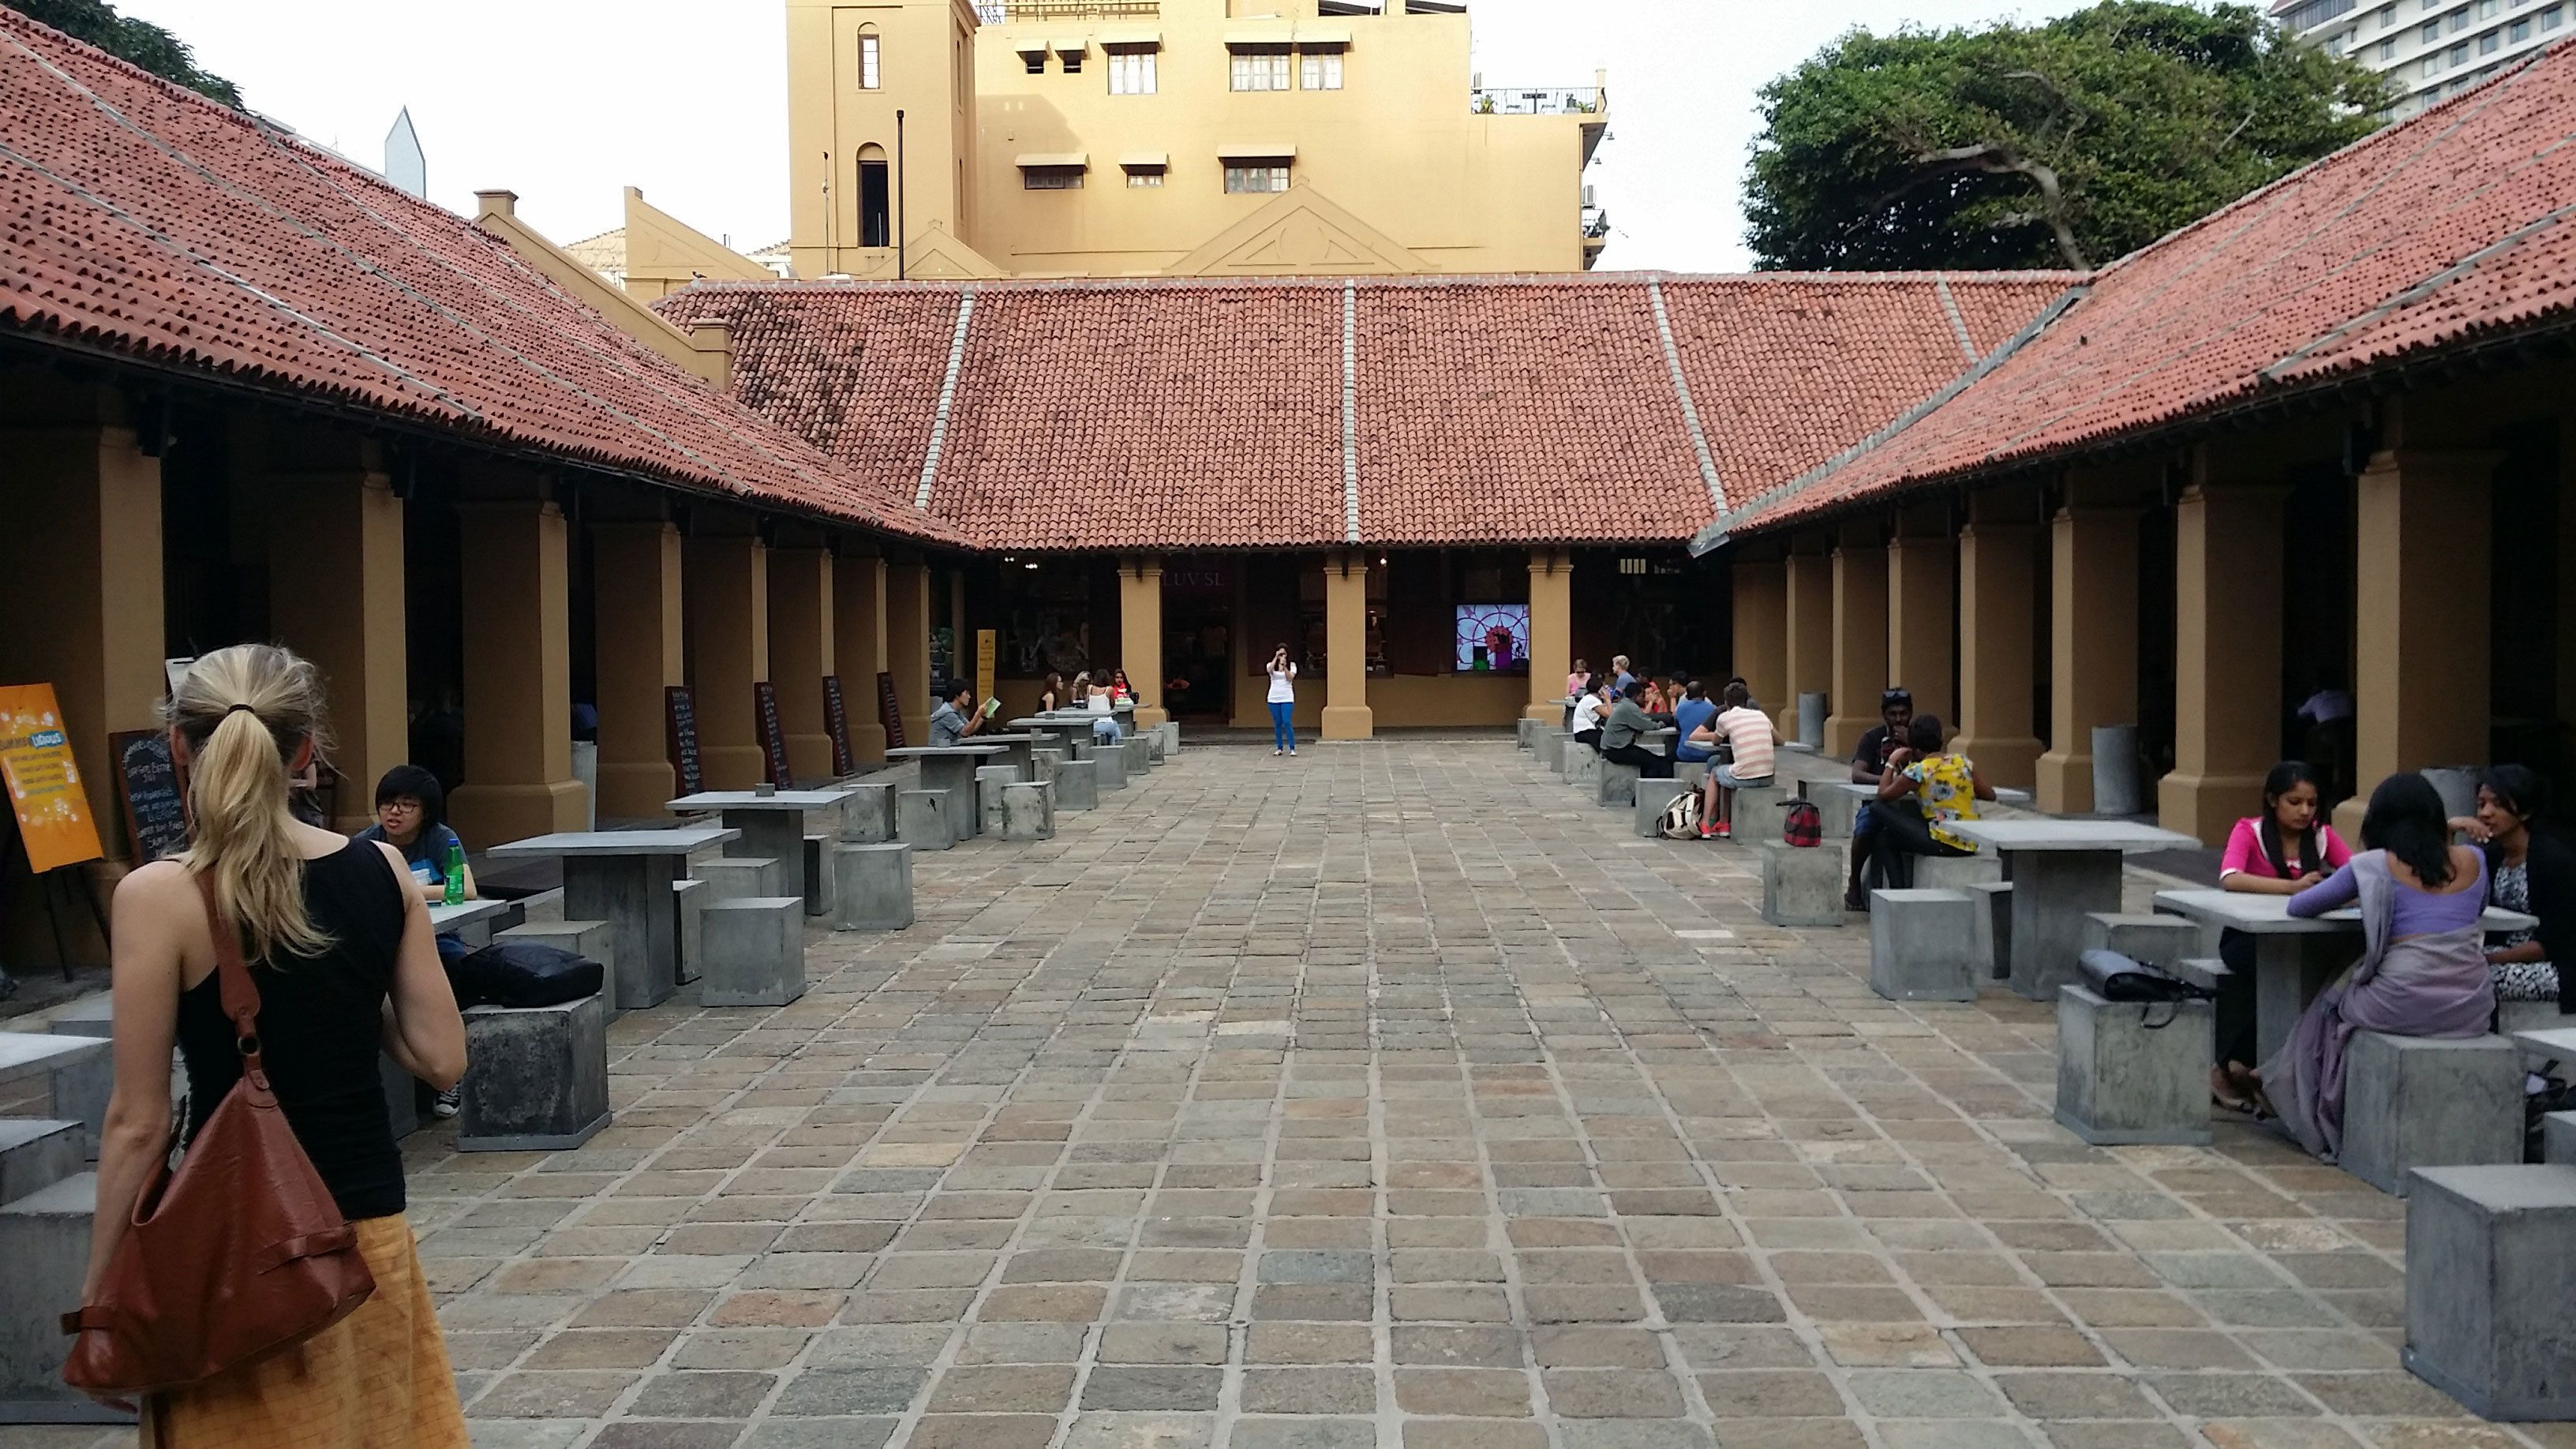 Courtyard and tables at the Old Dutch Hospital in Colombo